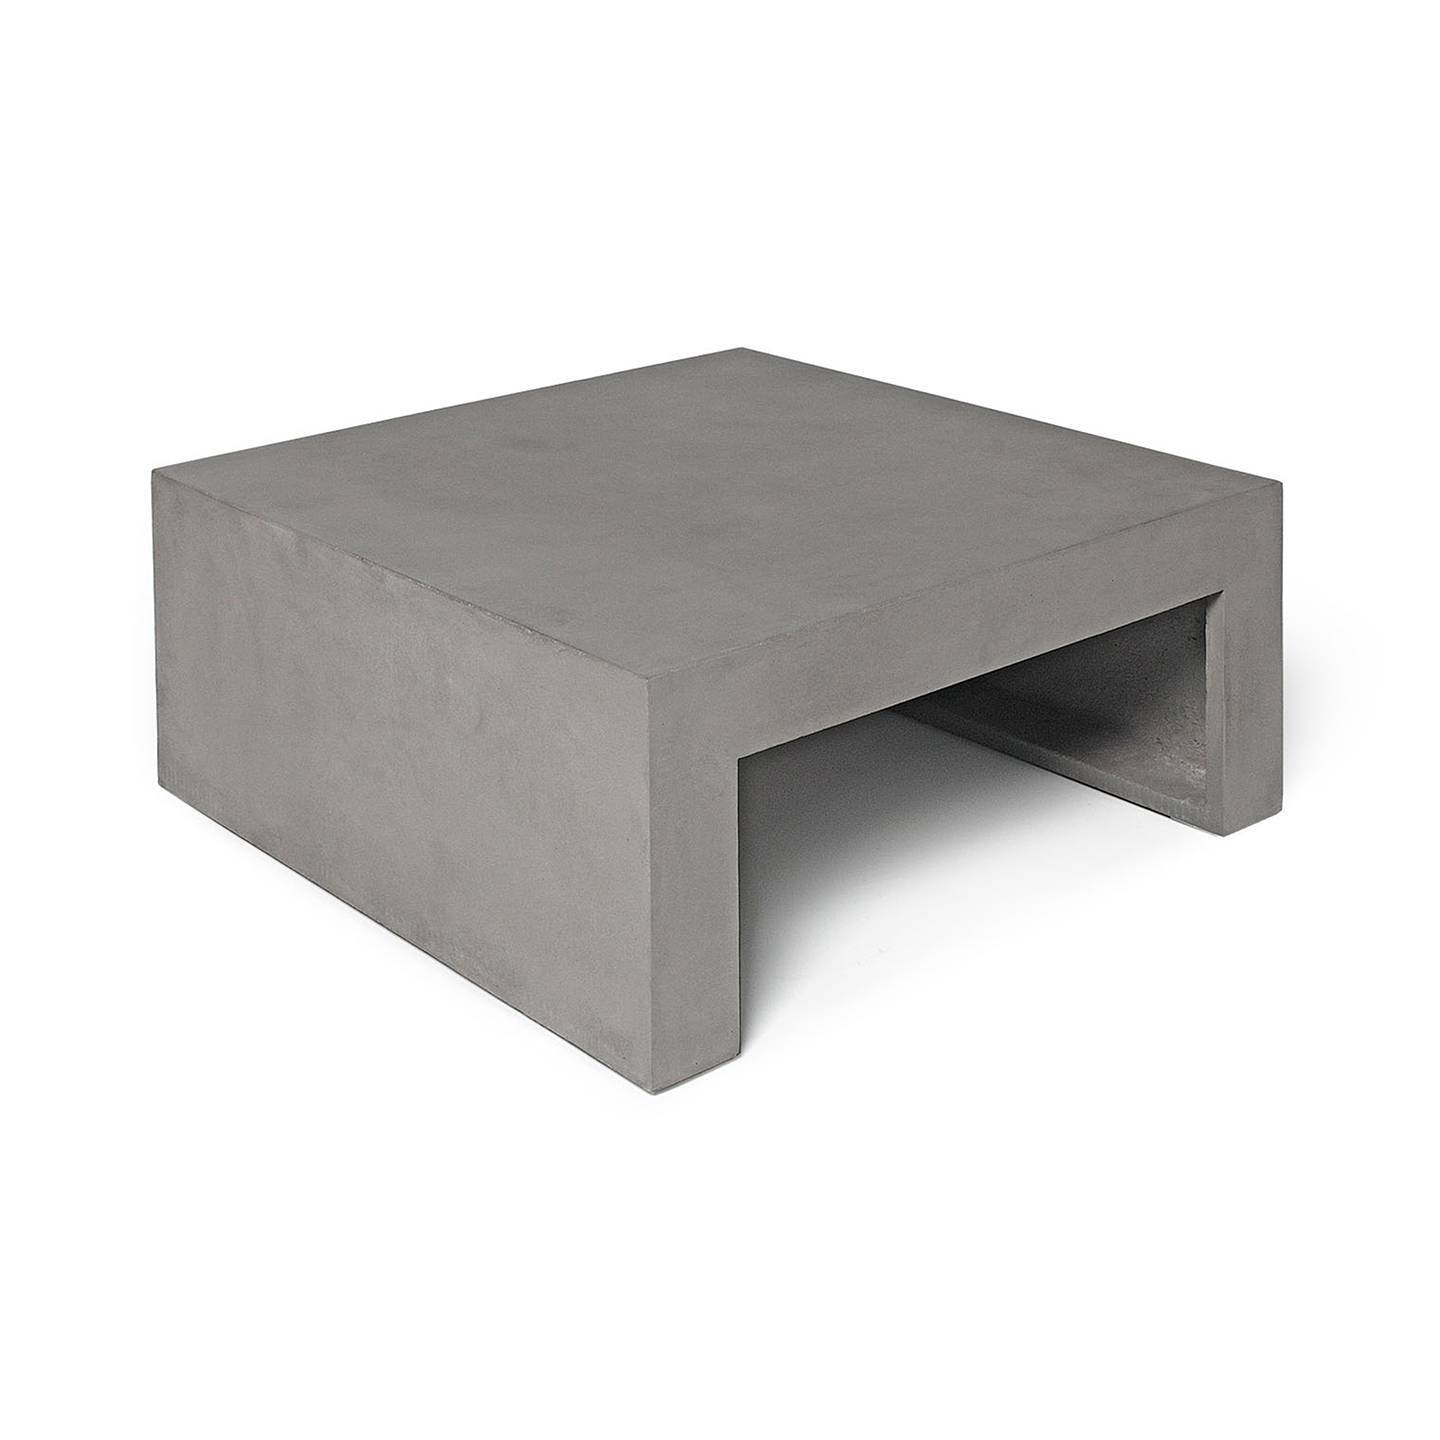 Dawn – Square Low Coffee Table | Lyon Béton Intended For Square Low Coffee Tables (View 6 of 20)